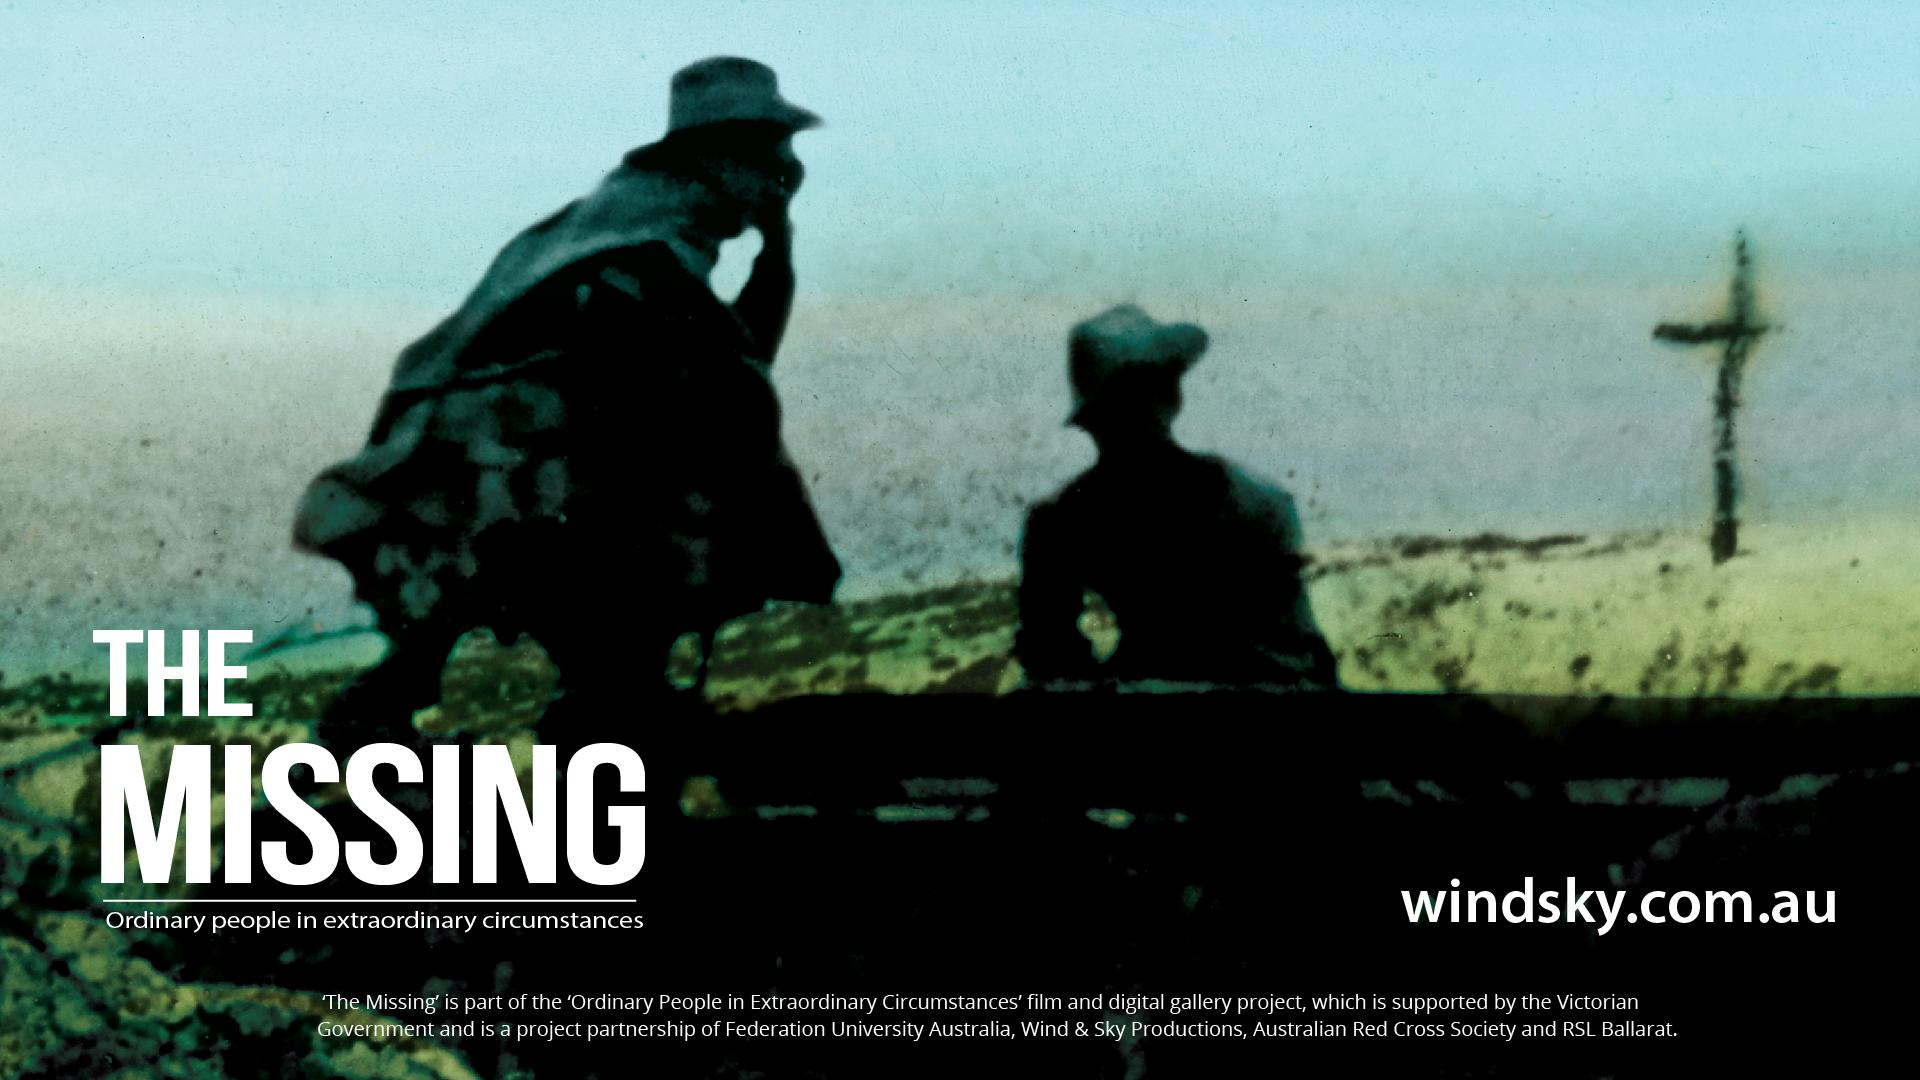 THE MISSING        (to play film click circle button to the right. To add to watchlist, click + button below it)